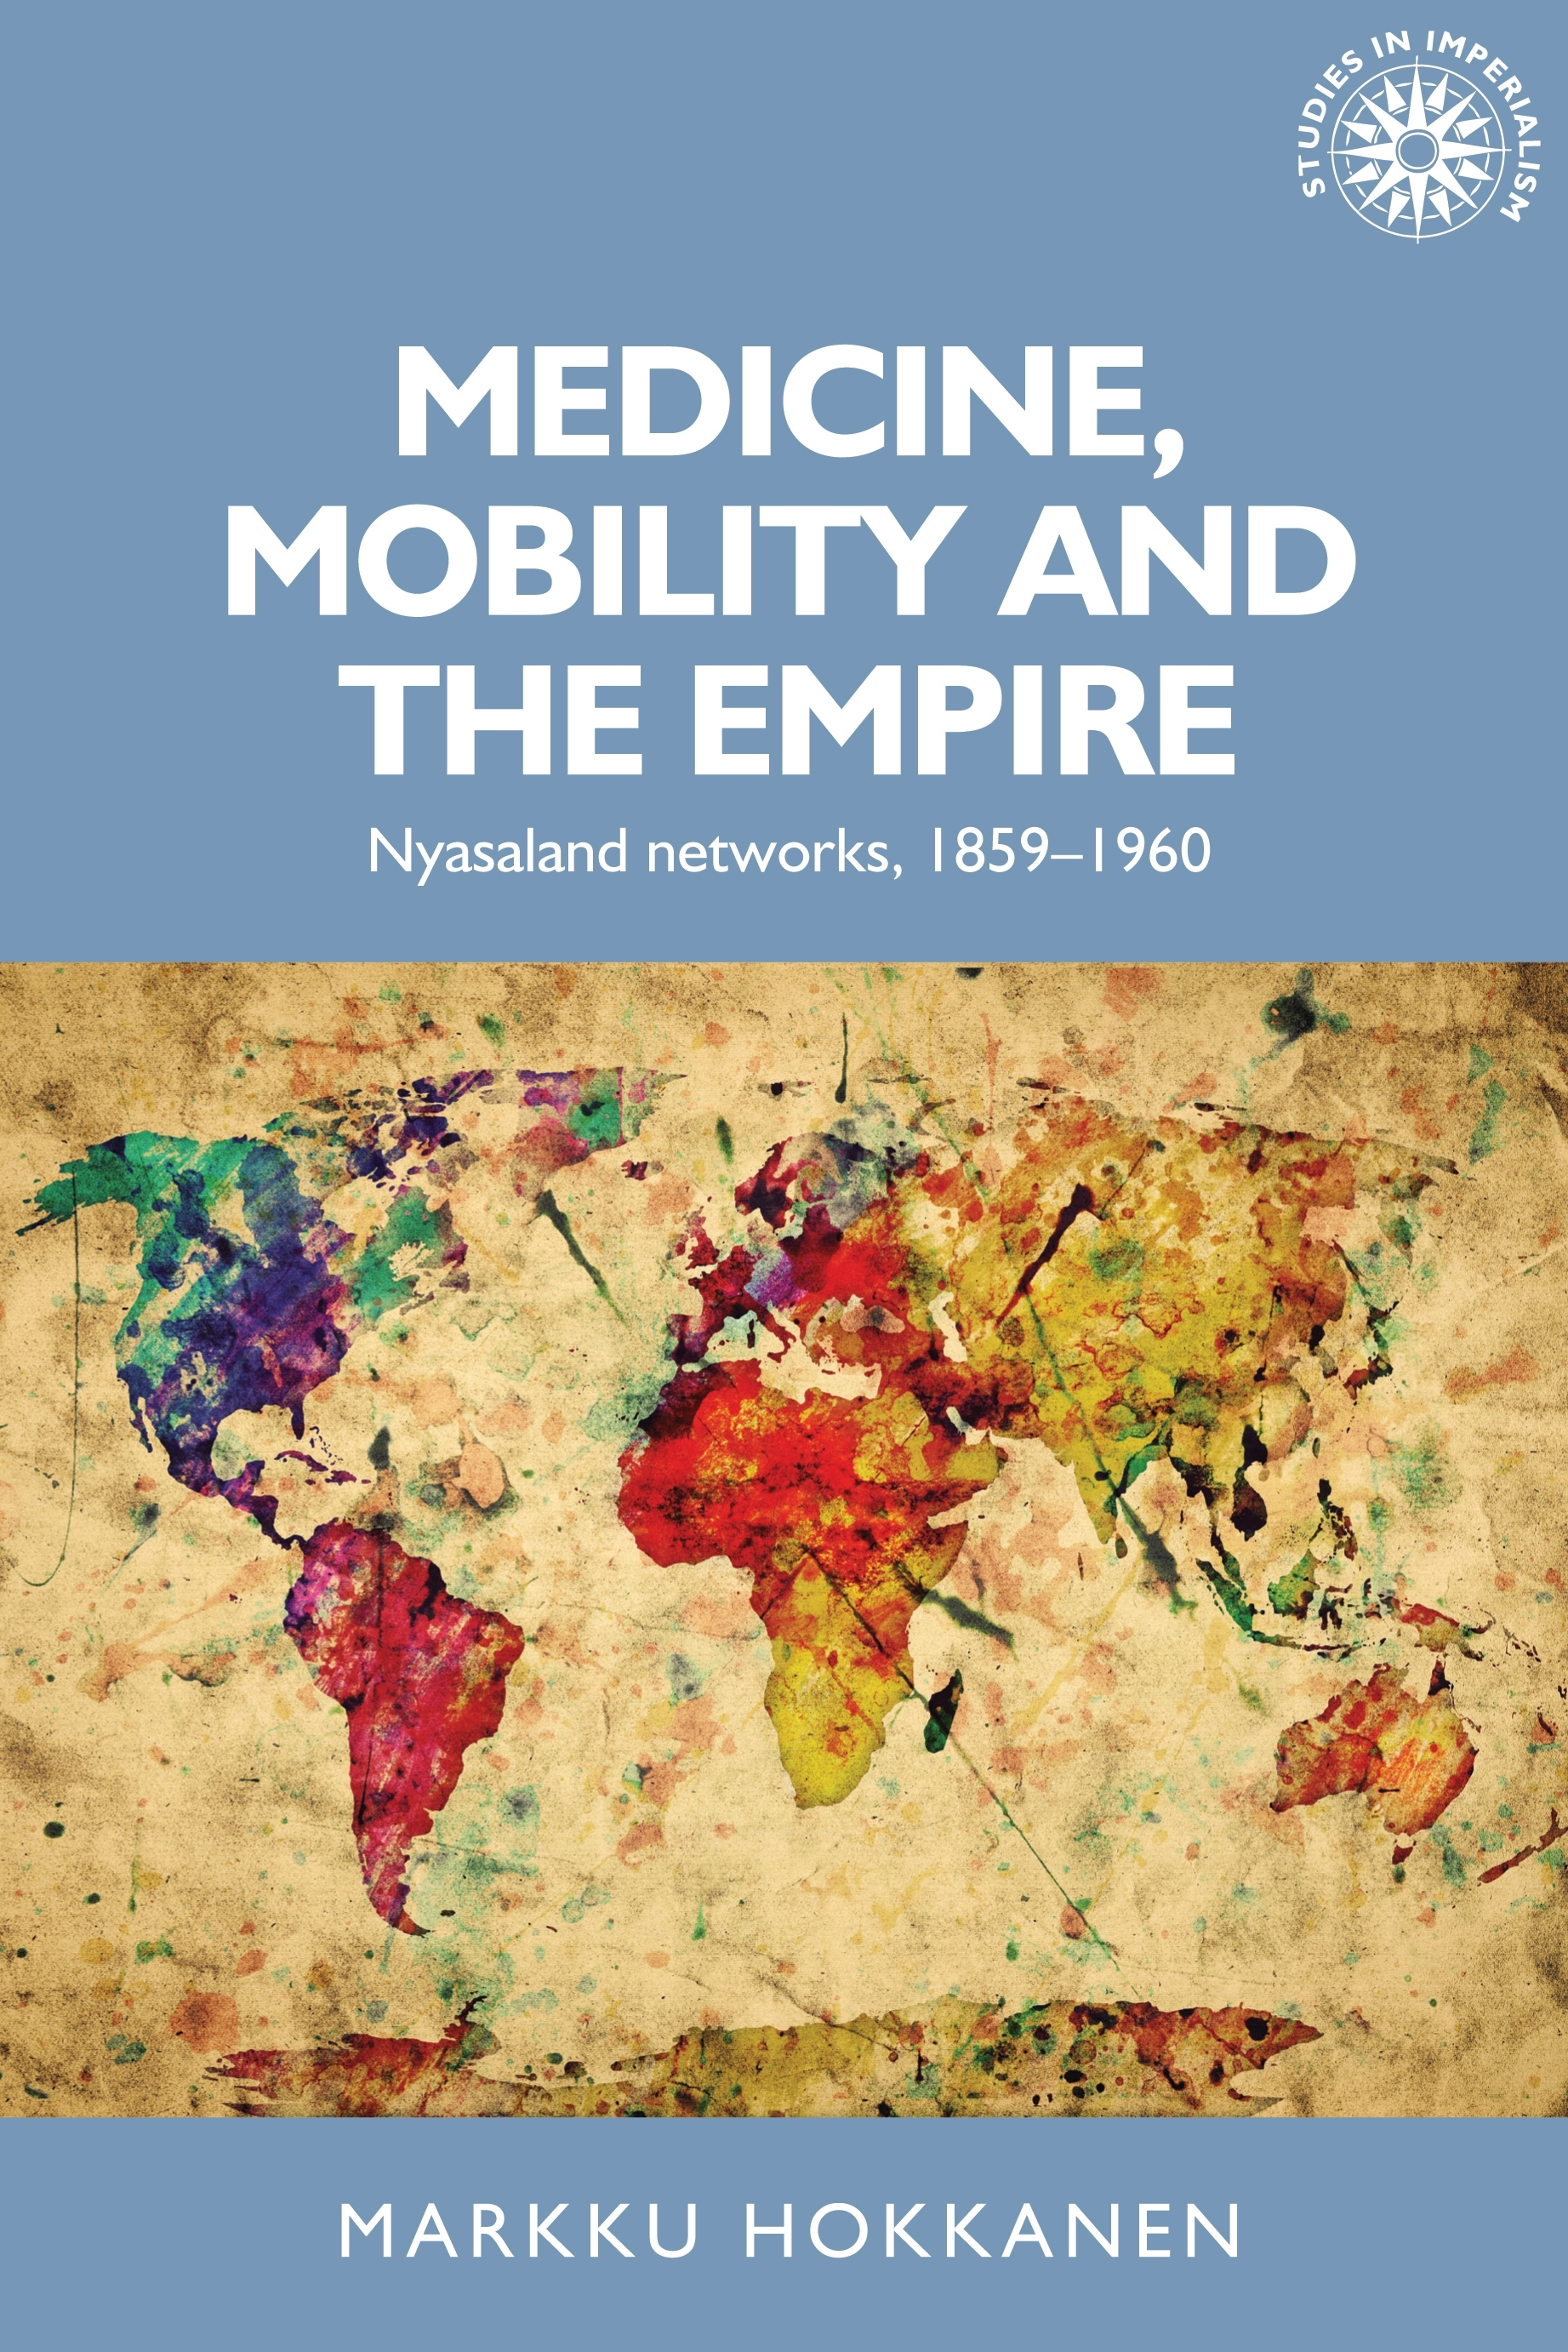 Medicine, mobility and the empire – Q&A with Markku Hokkanen